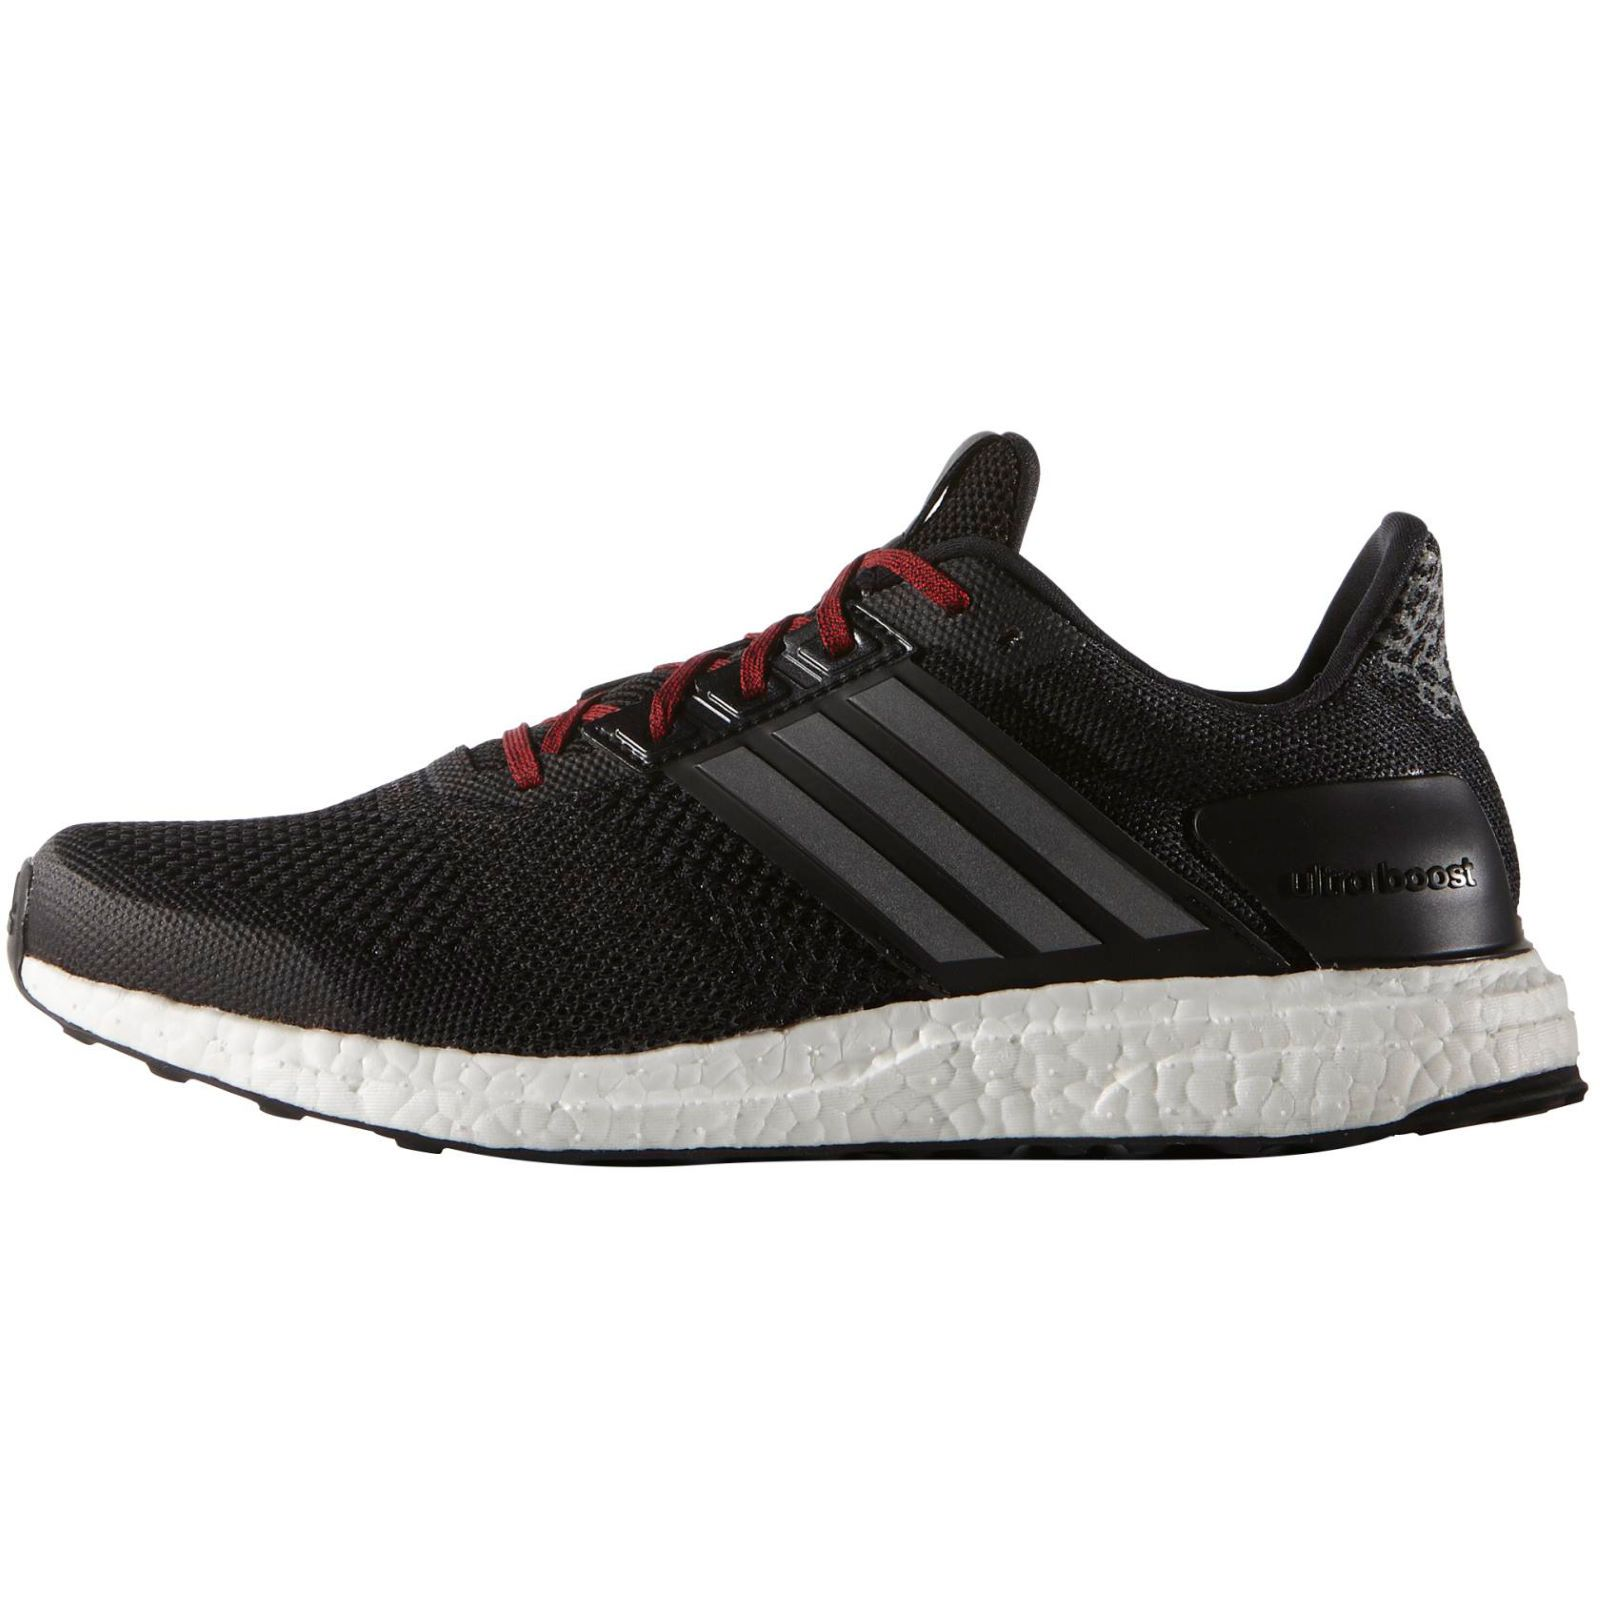 Wiggle | Adidas Ultra Boost ST Shoes (SS16) | Stability Running Shoes